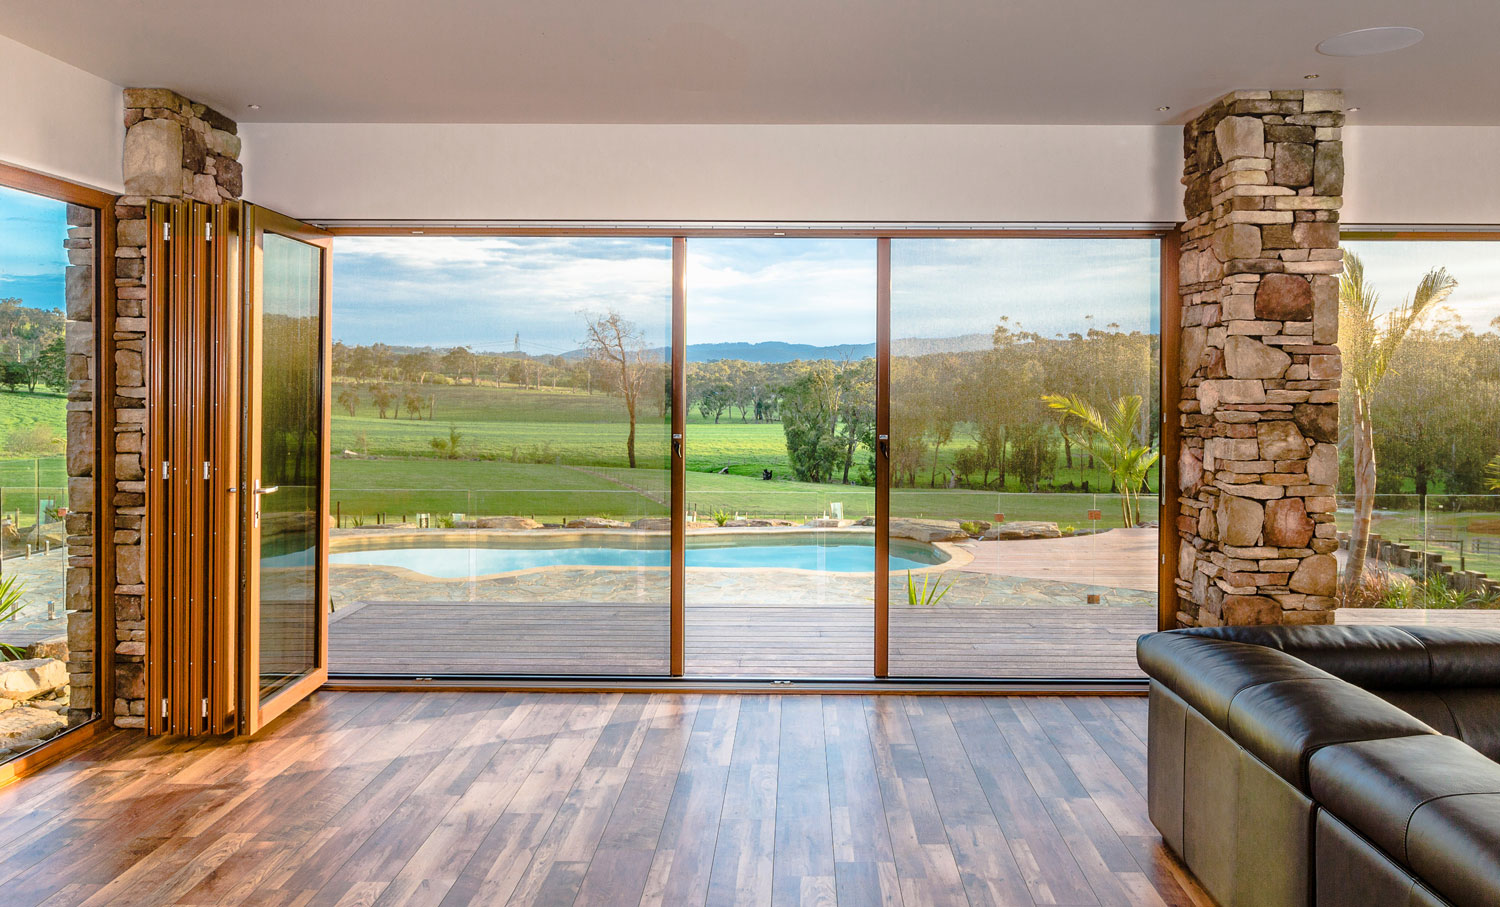 <div class='slider_caption'>		 <h2>Infinity retractable Screens are suitable for: